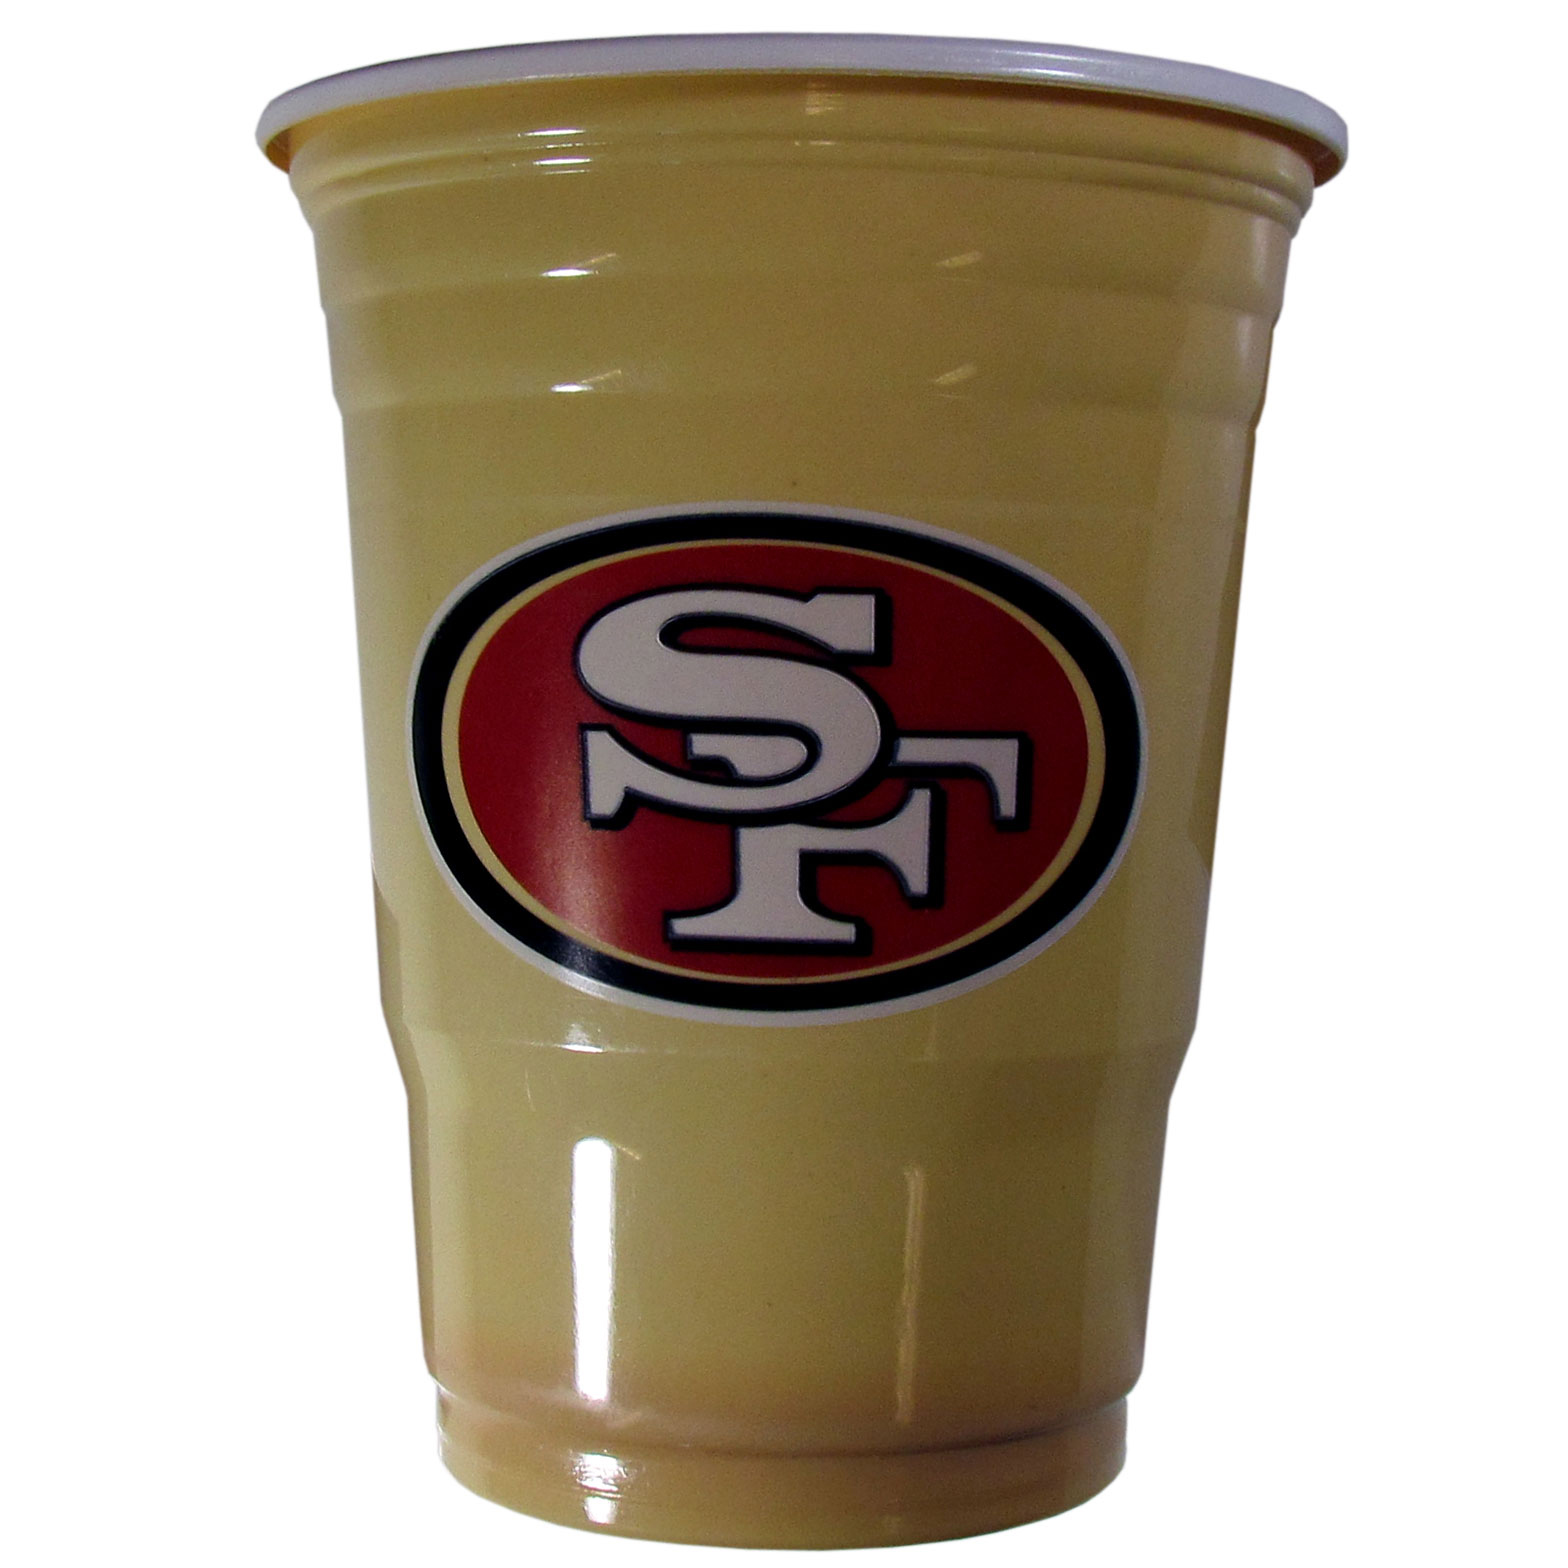 San Francisco 49ers Plastic Game Day Cups - Our 18 ounce game day cups are what every tailgating or backyard events needs! The cups feature a big San Francisco 49ers logo so you can show off your team pride. The popular 18 ounce size is perfect for drinks or ping pong balls! Sold in sleeves of 18 cups.